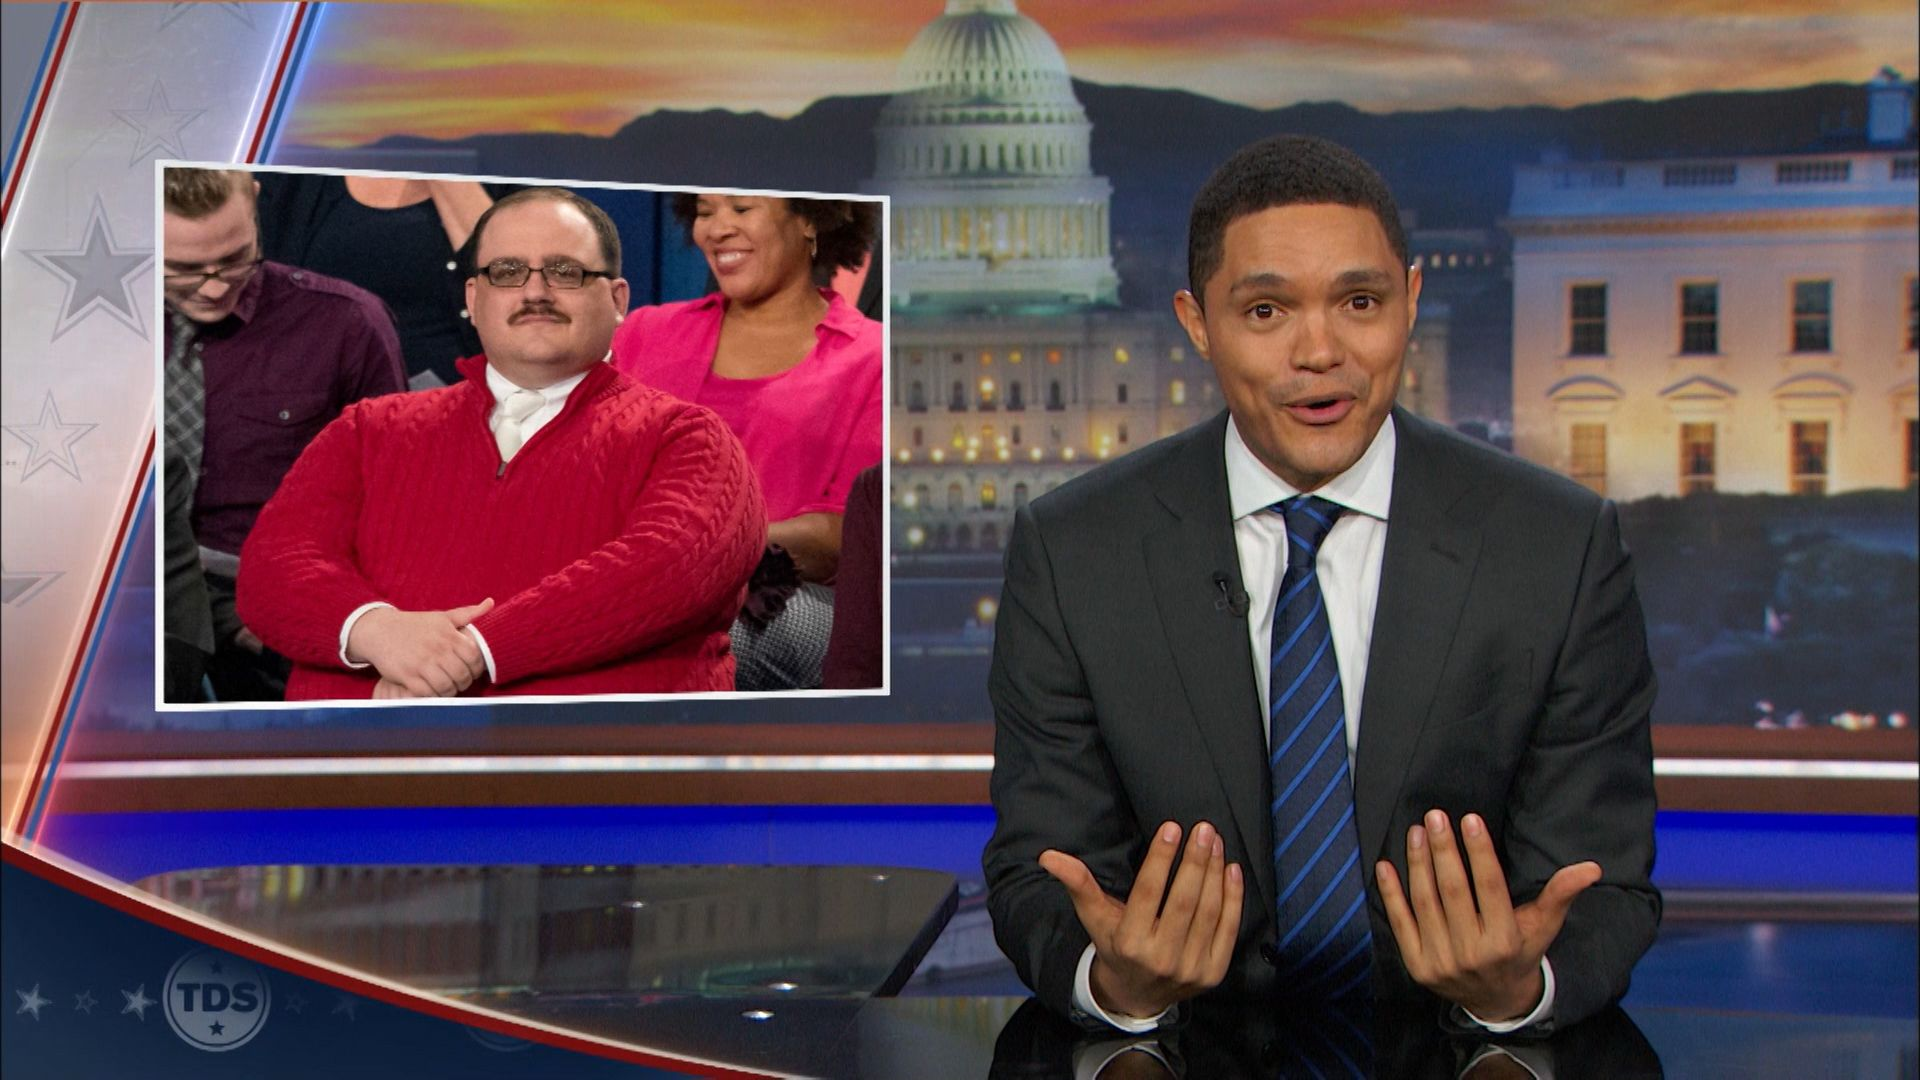 Ken Bone: America's Newest Sweetheart - The Daily Show with Trevor ...